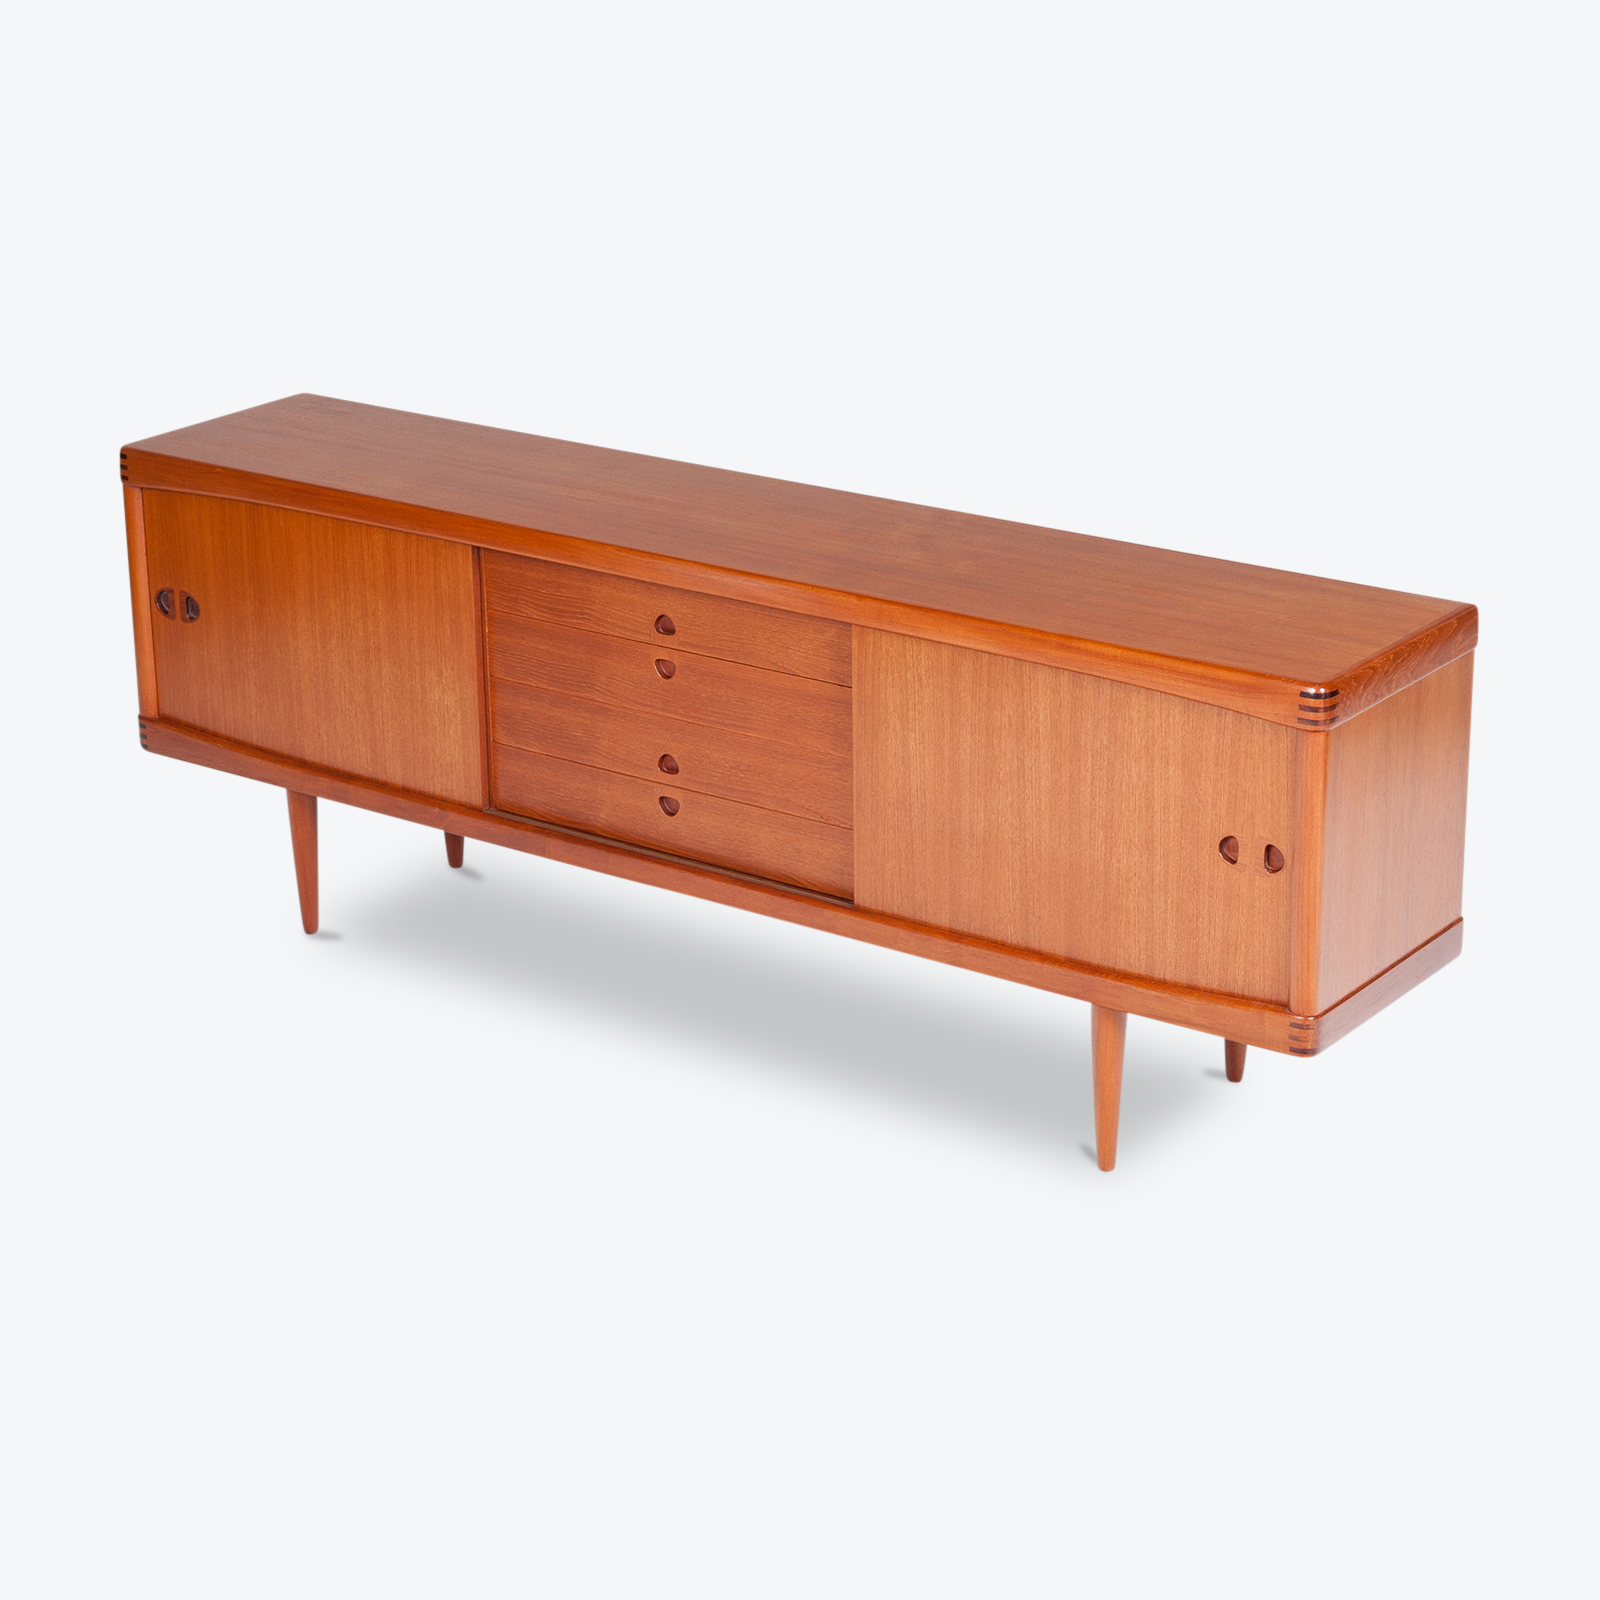 Sideboard By H W Klein In Teak For Bramin, 1960s, Denmark Hero